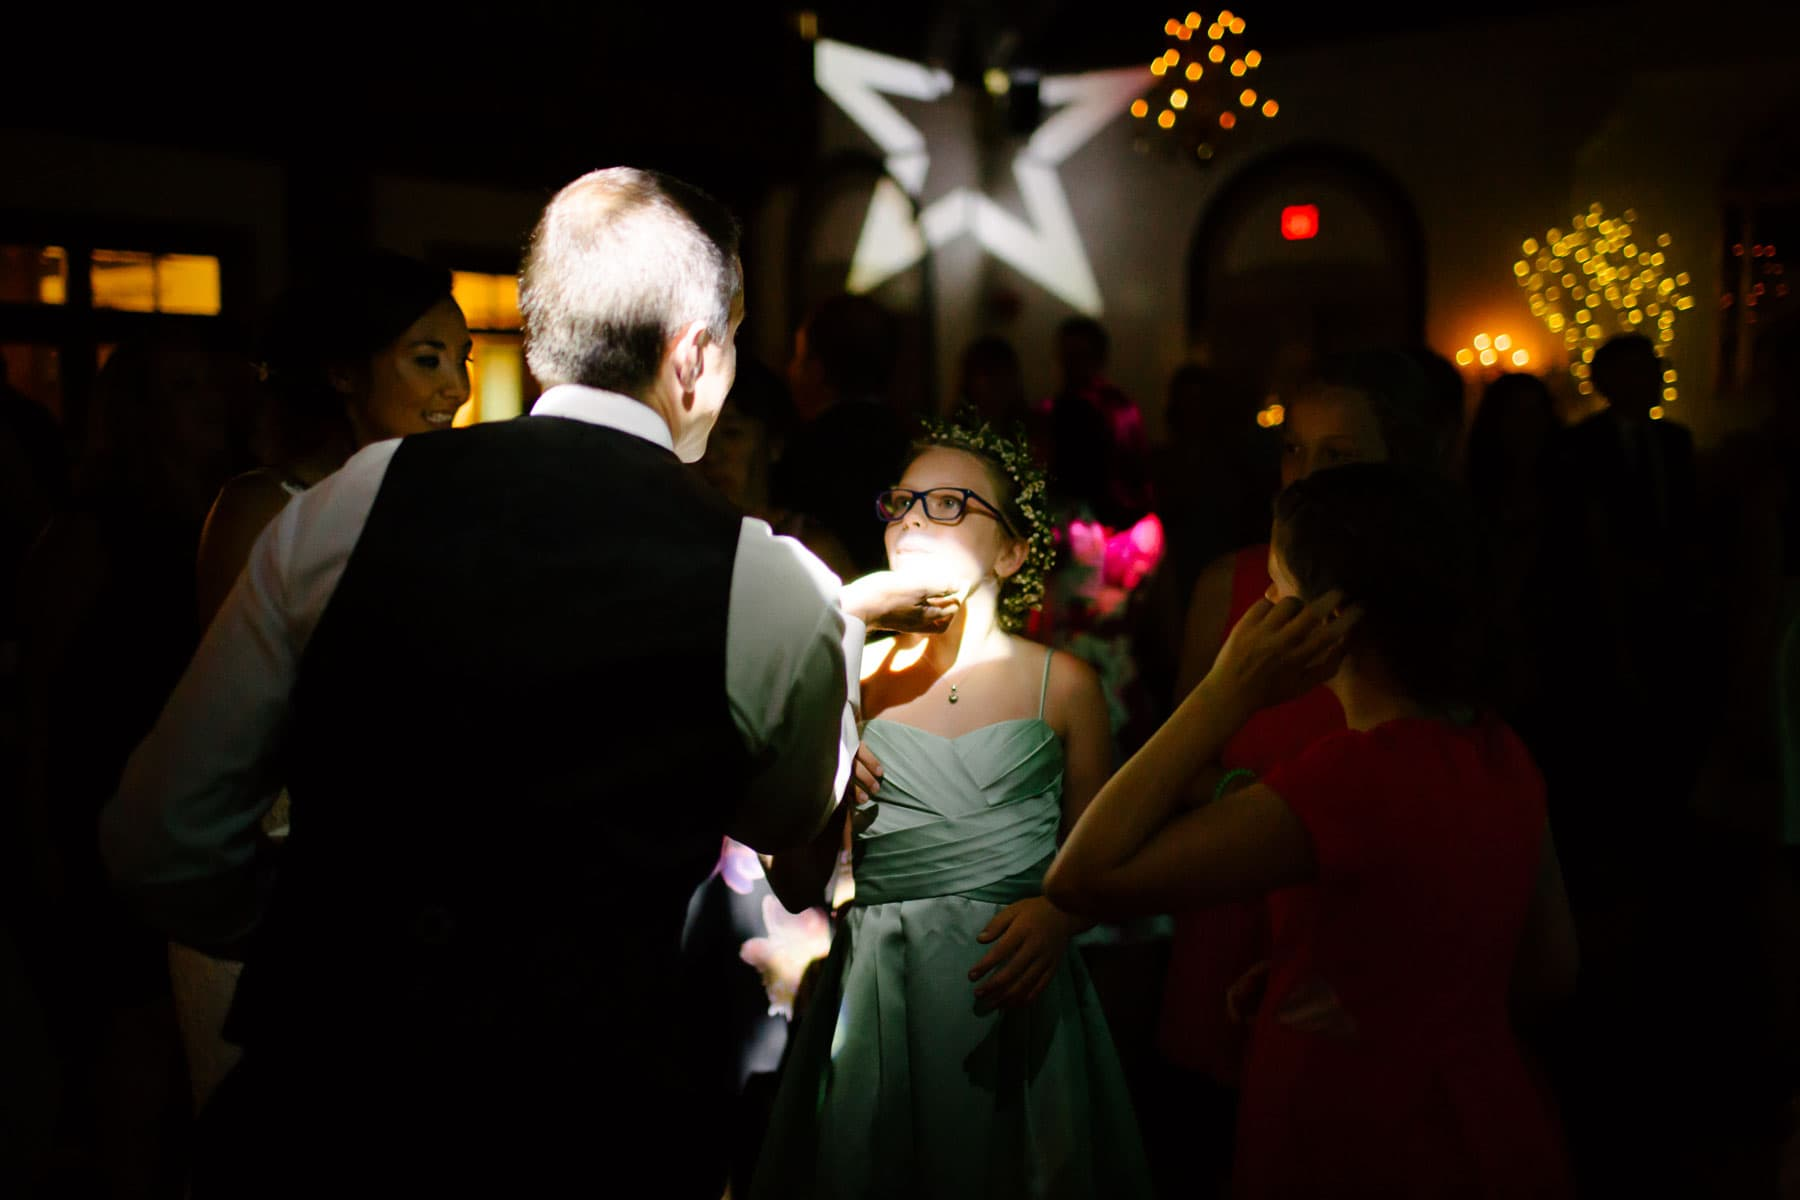 A man dances with his adolescent daughter on the dark dance floor at this Boulevard Club wedding in Toronto.